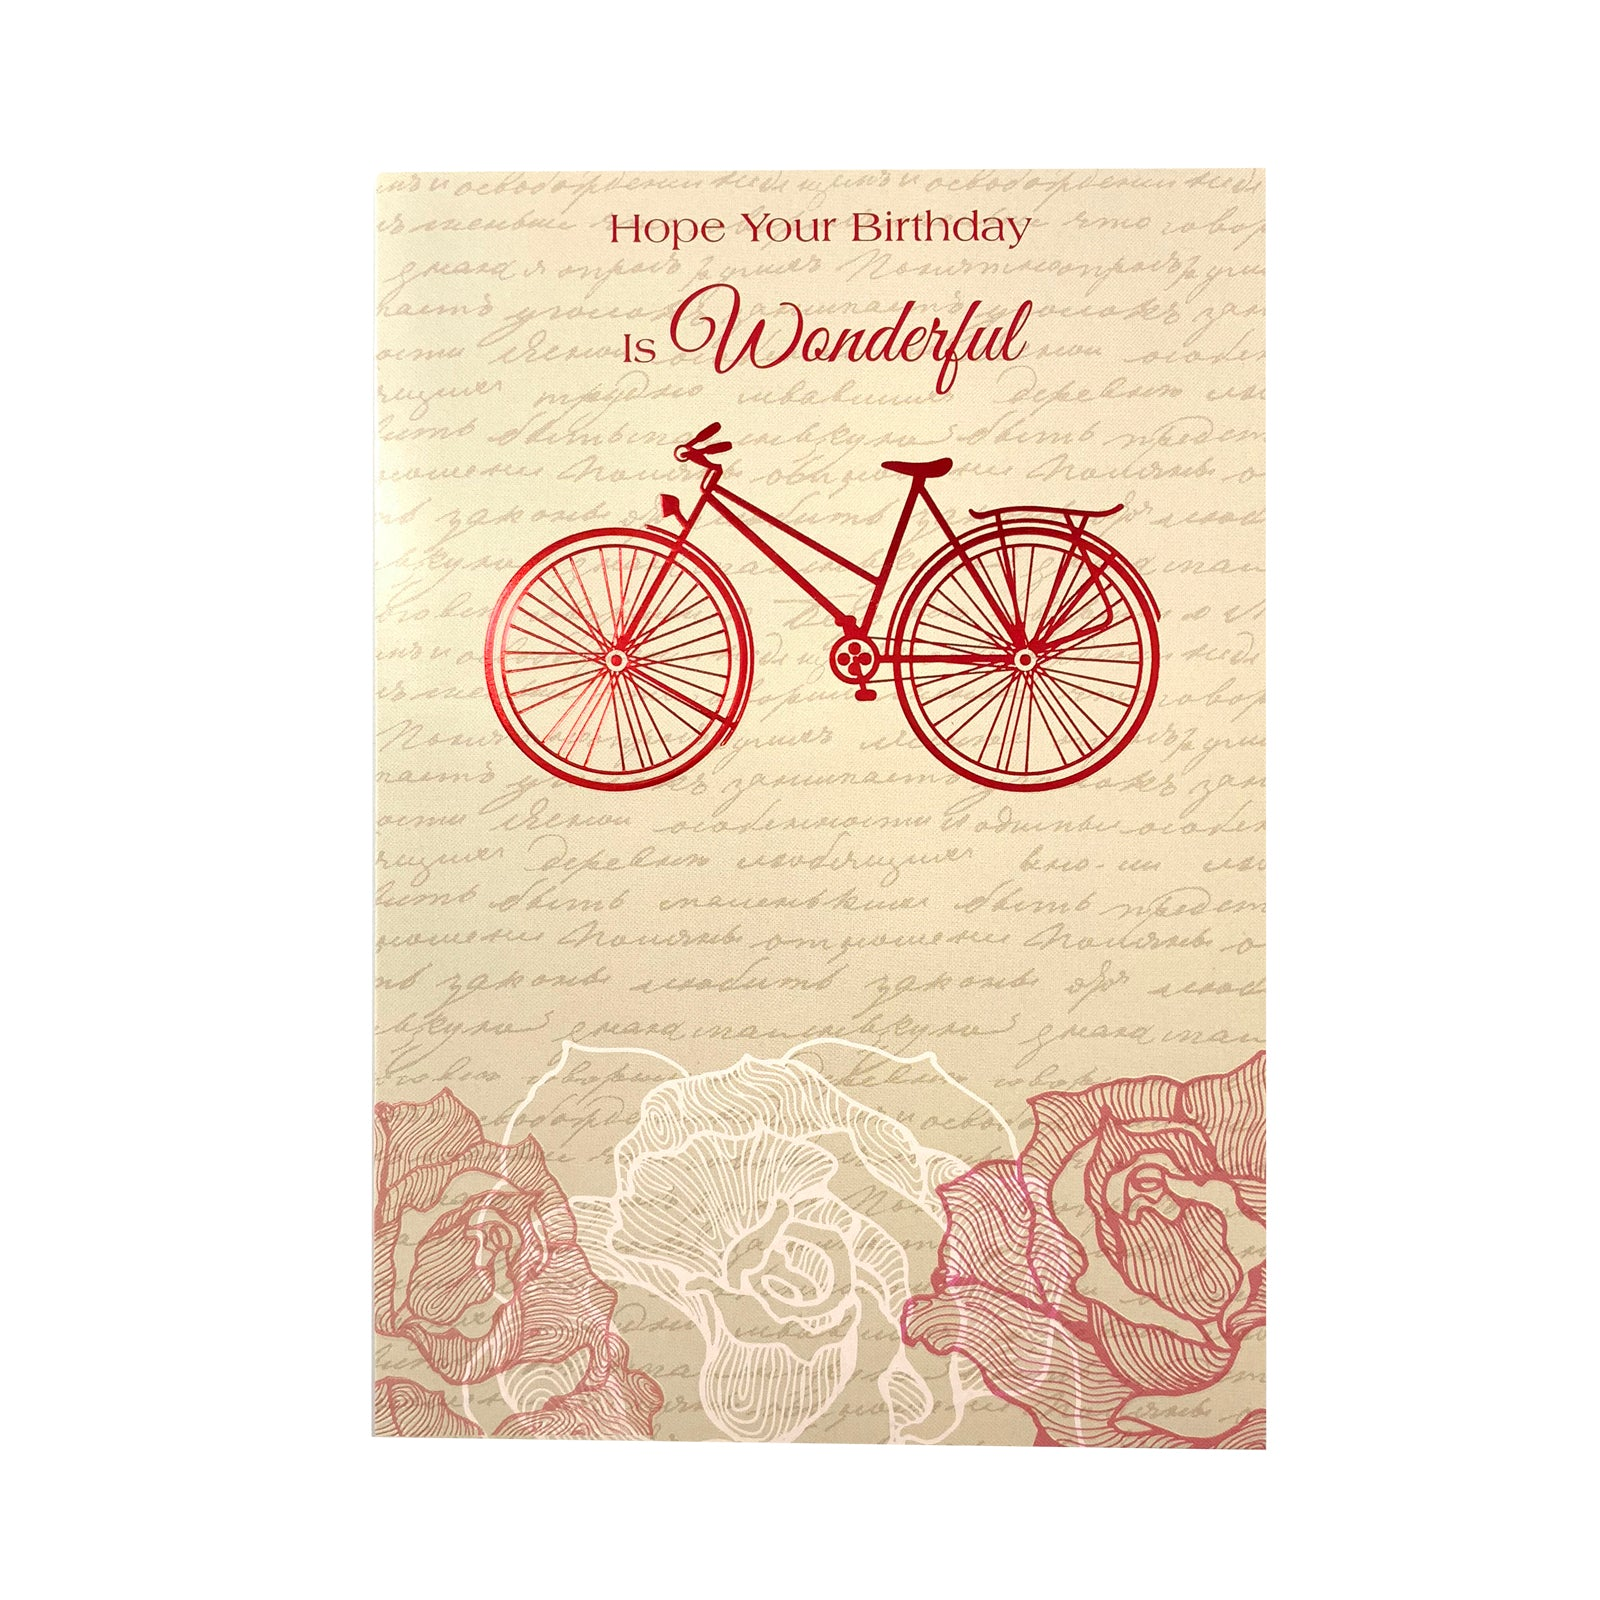 Designer Greetings Birthday Card - Hope Your Birthday Is Wonderful Bicycle